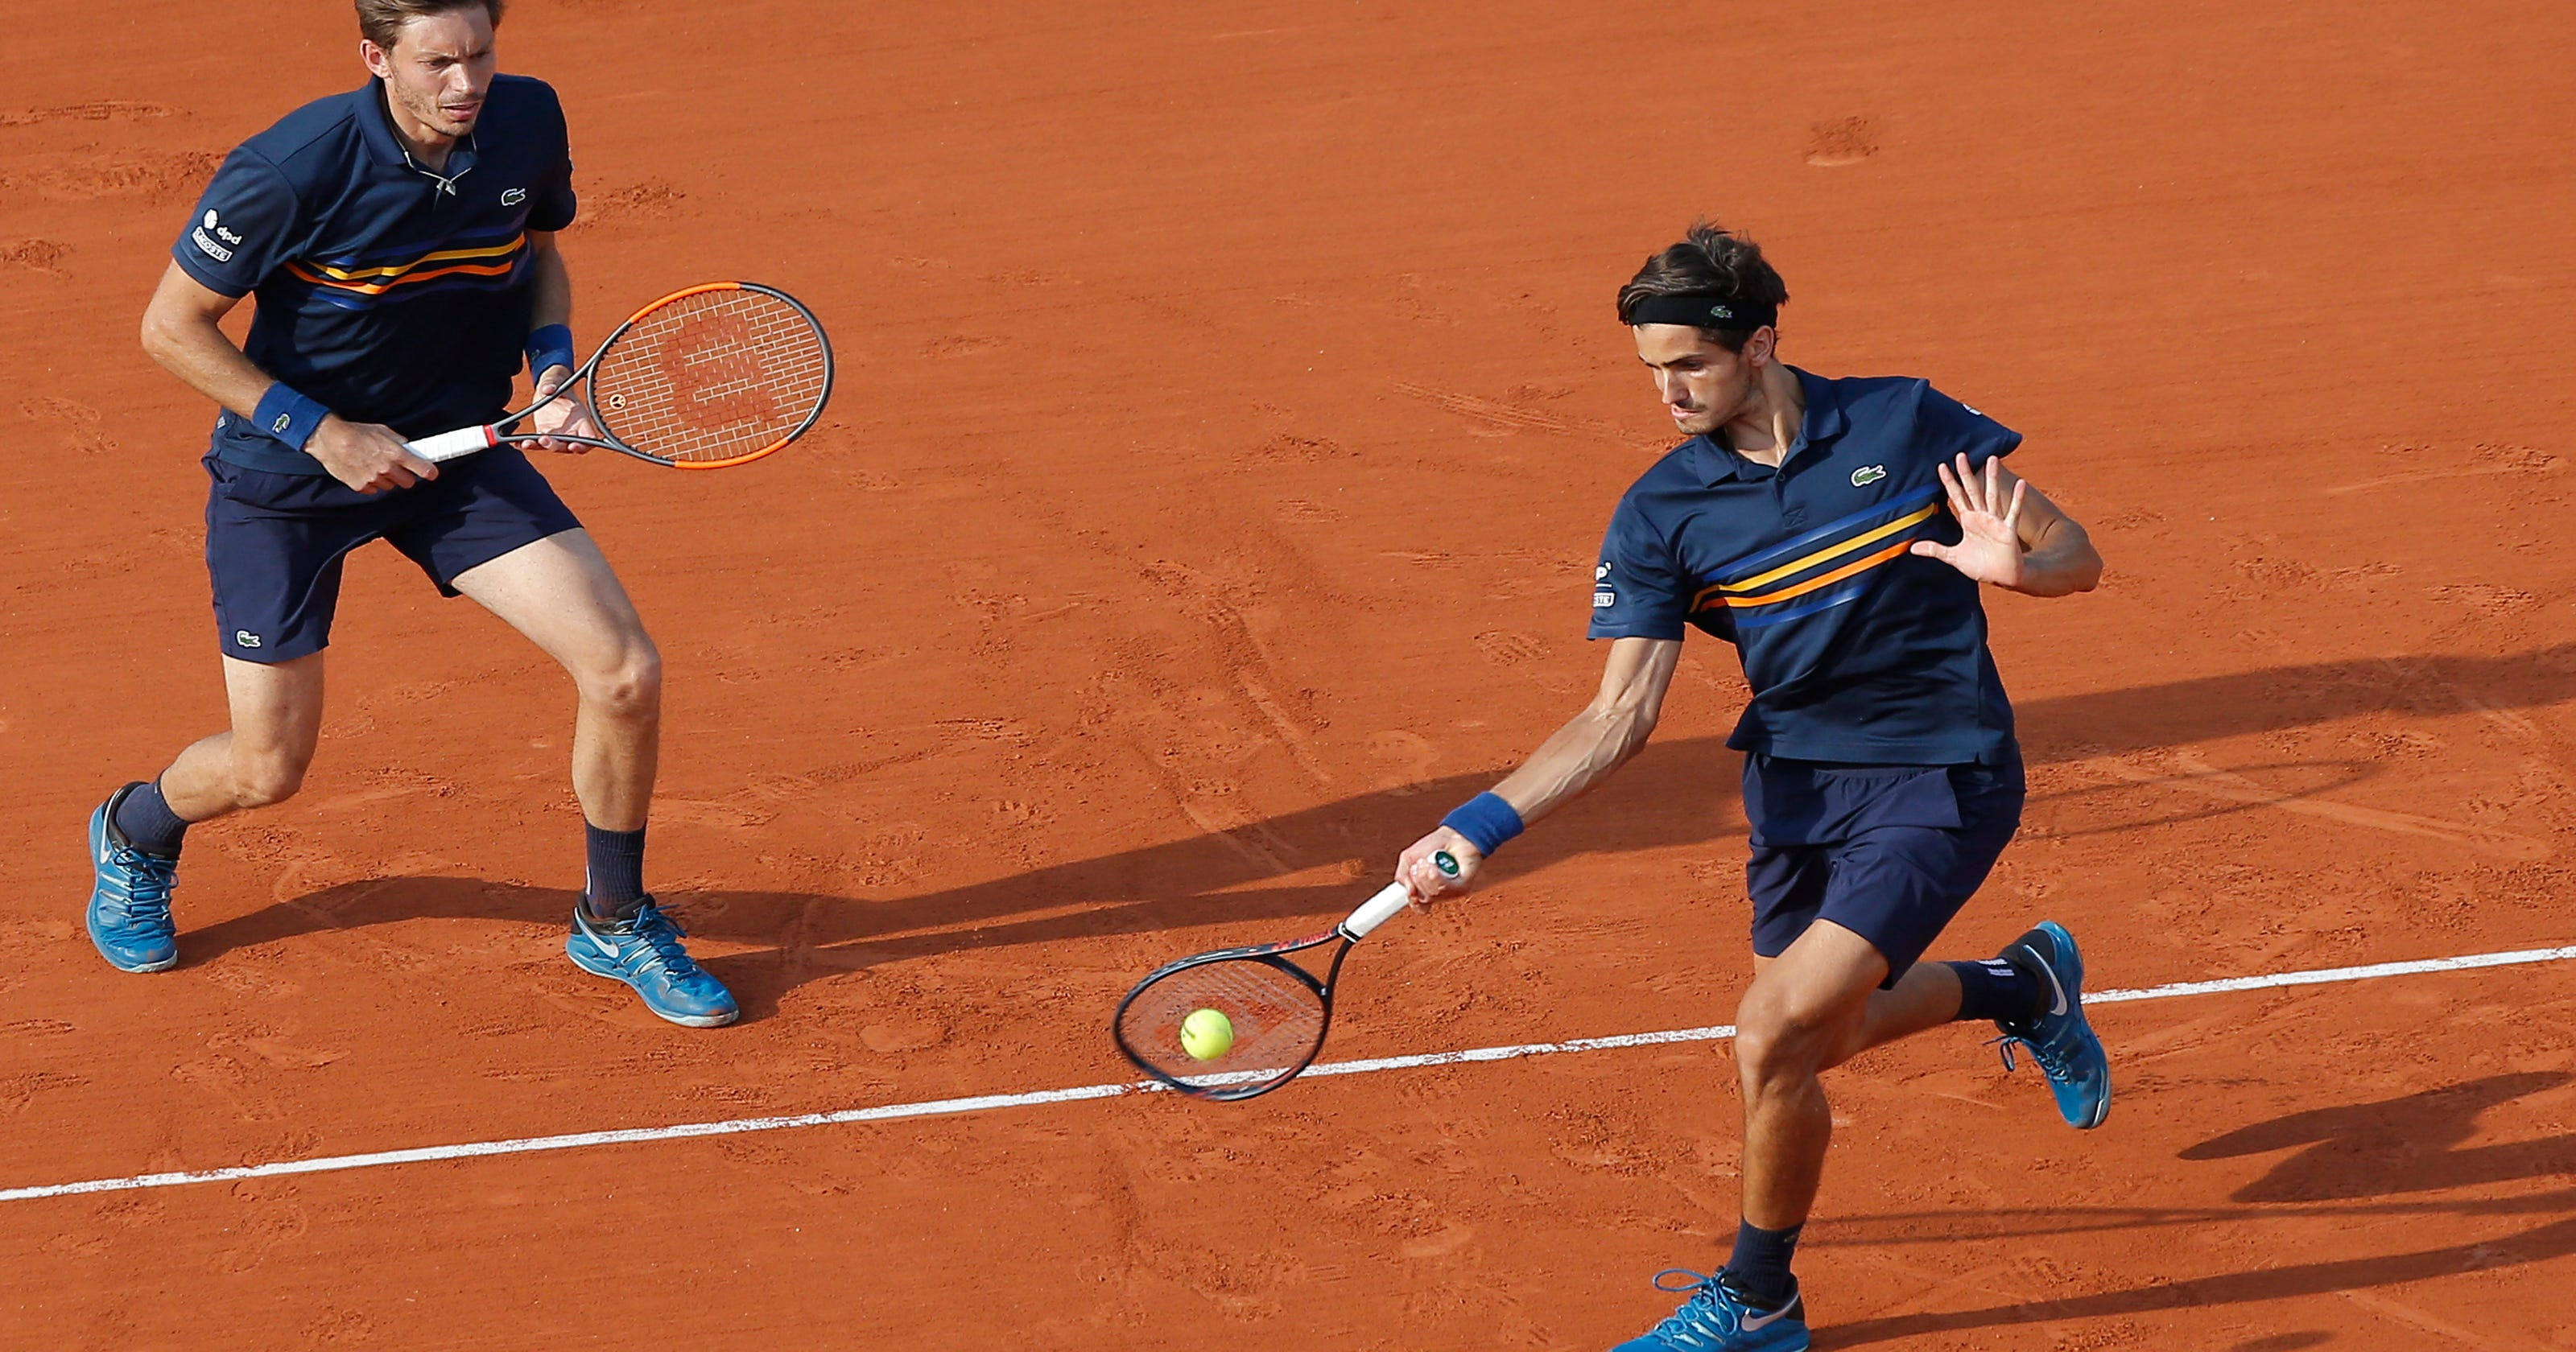 The Latest: French duo Mahut-Herbert win men's doubles title